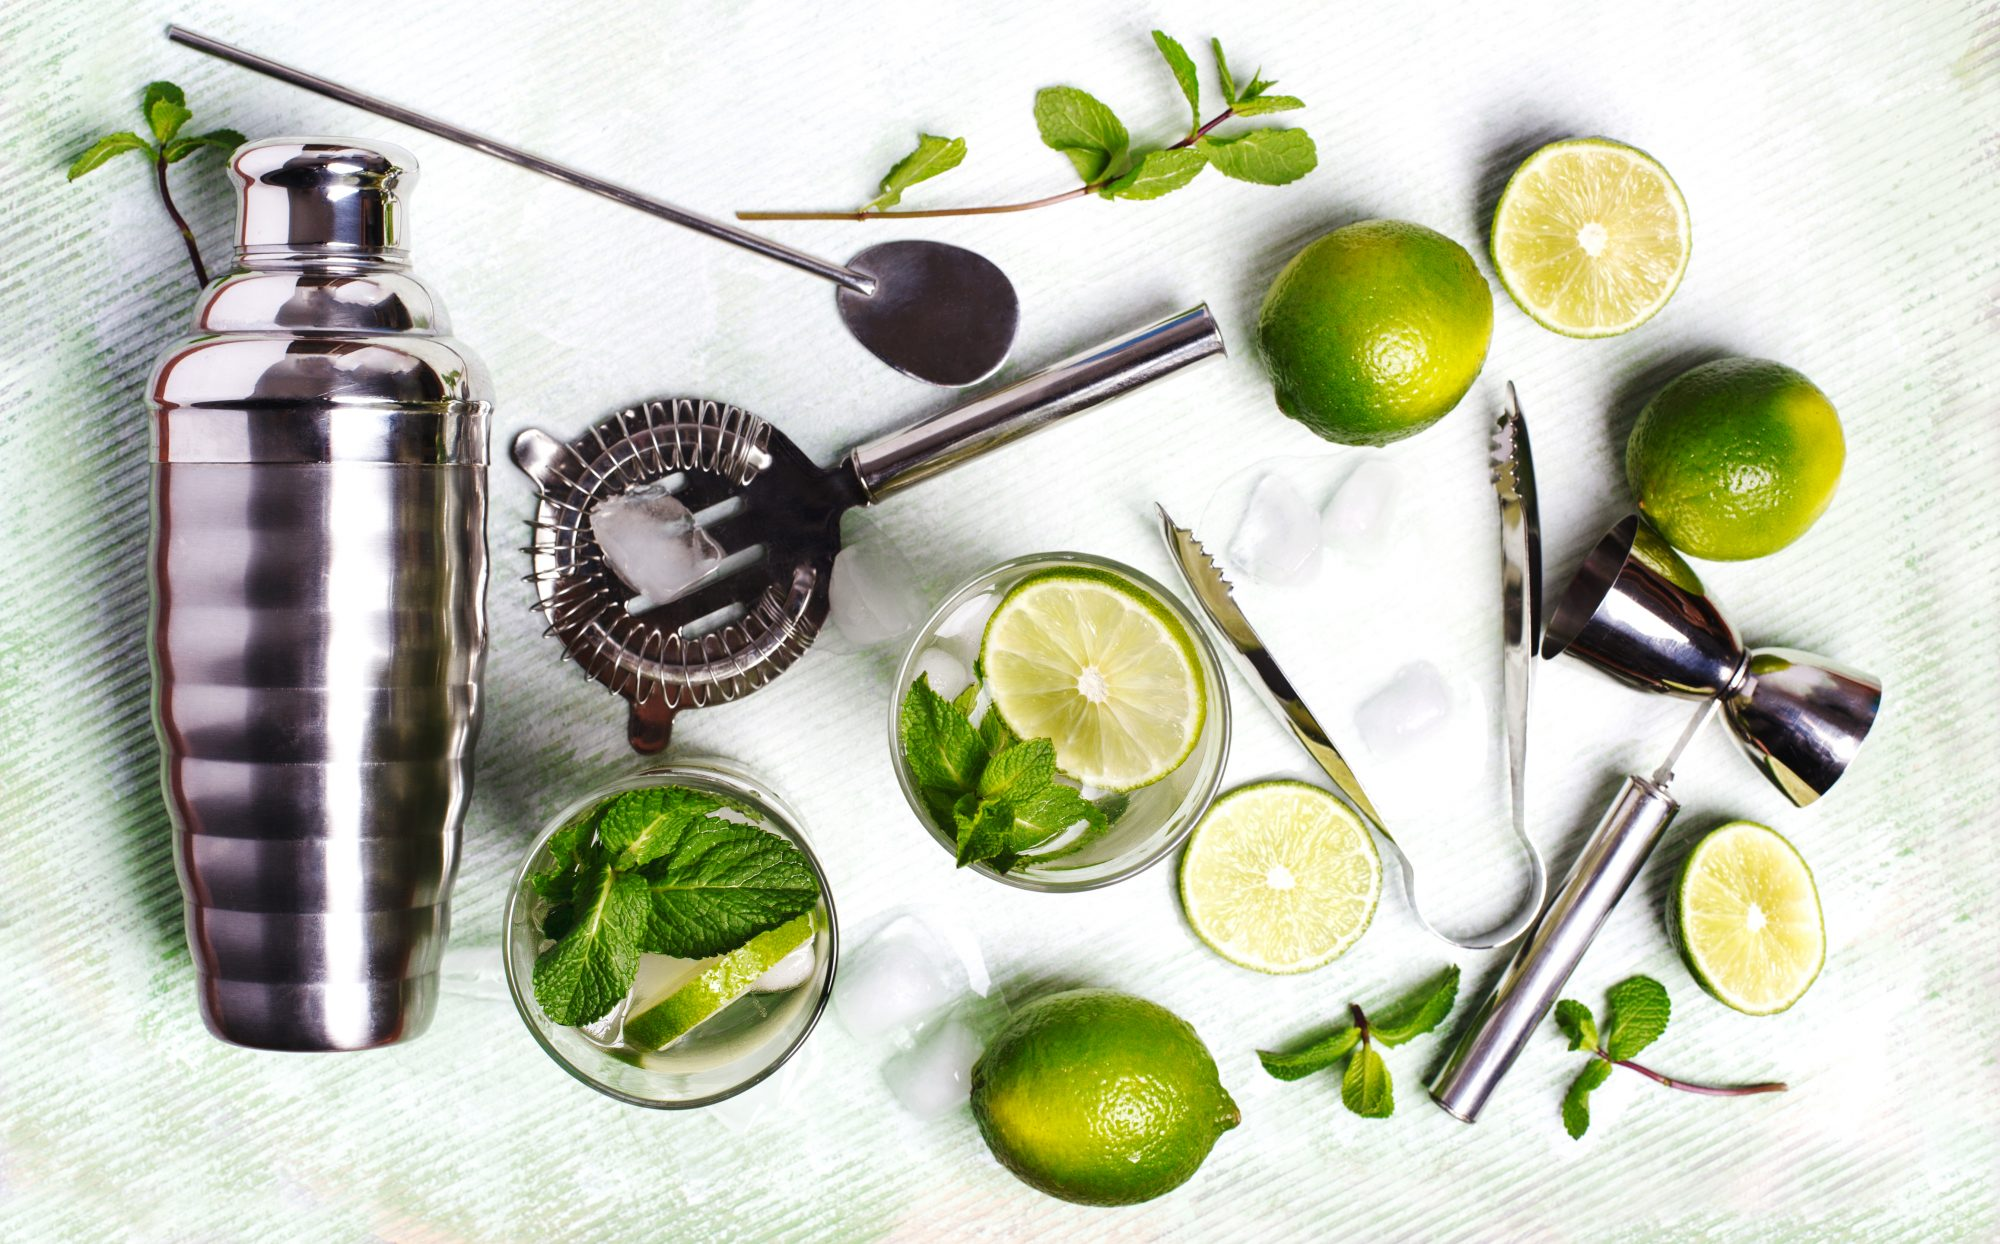 Summer drink mojito ingredients: how to make better cocktails